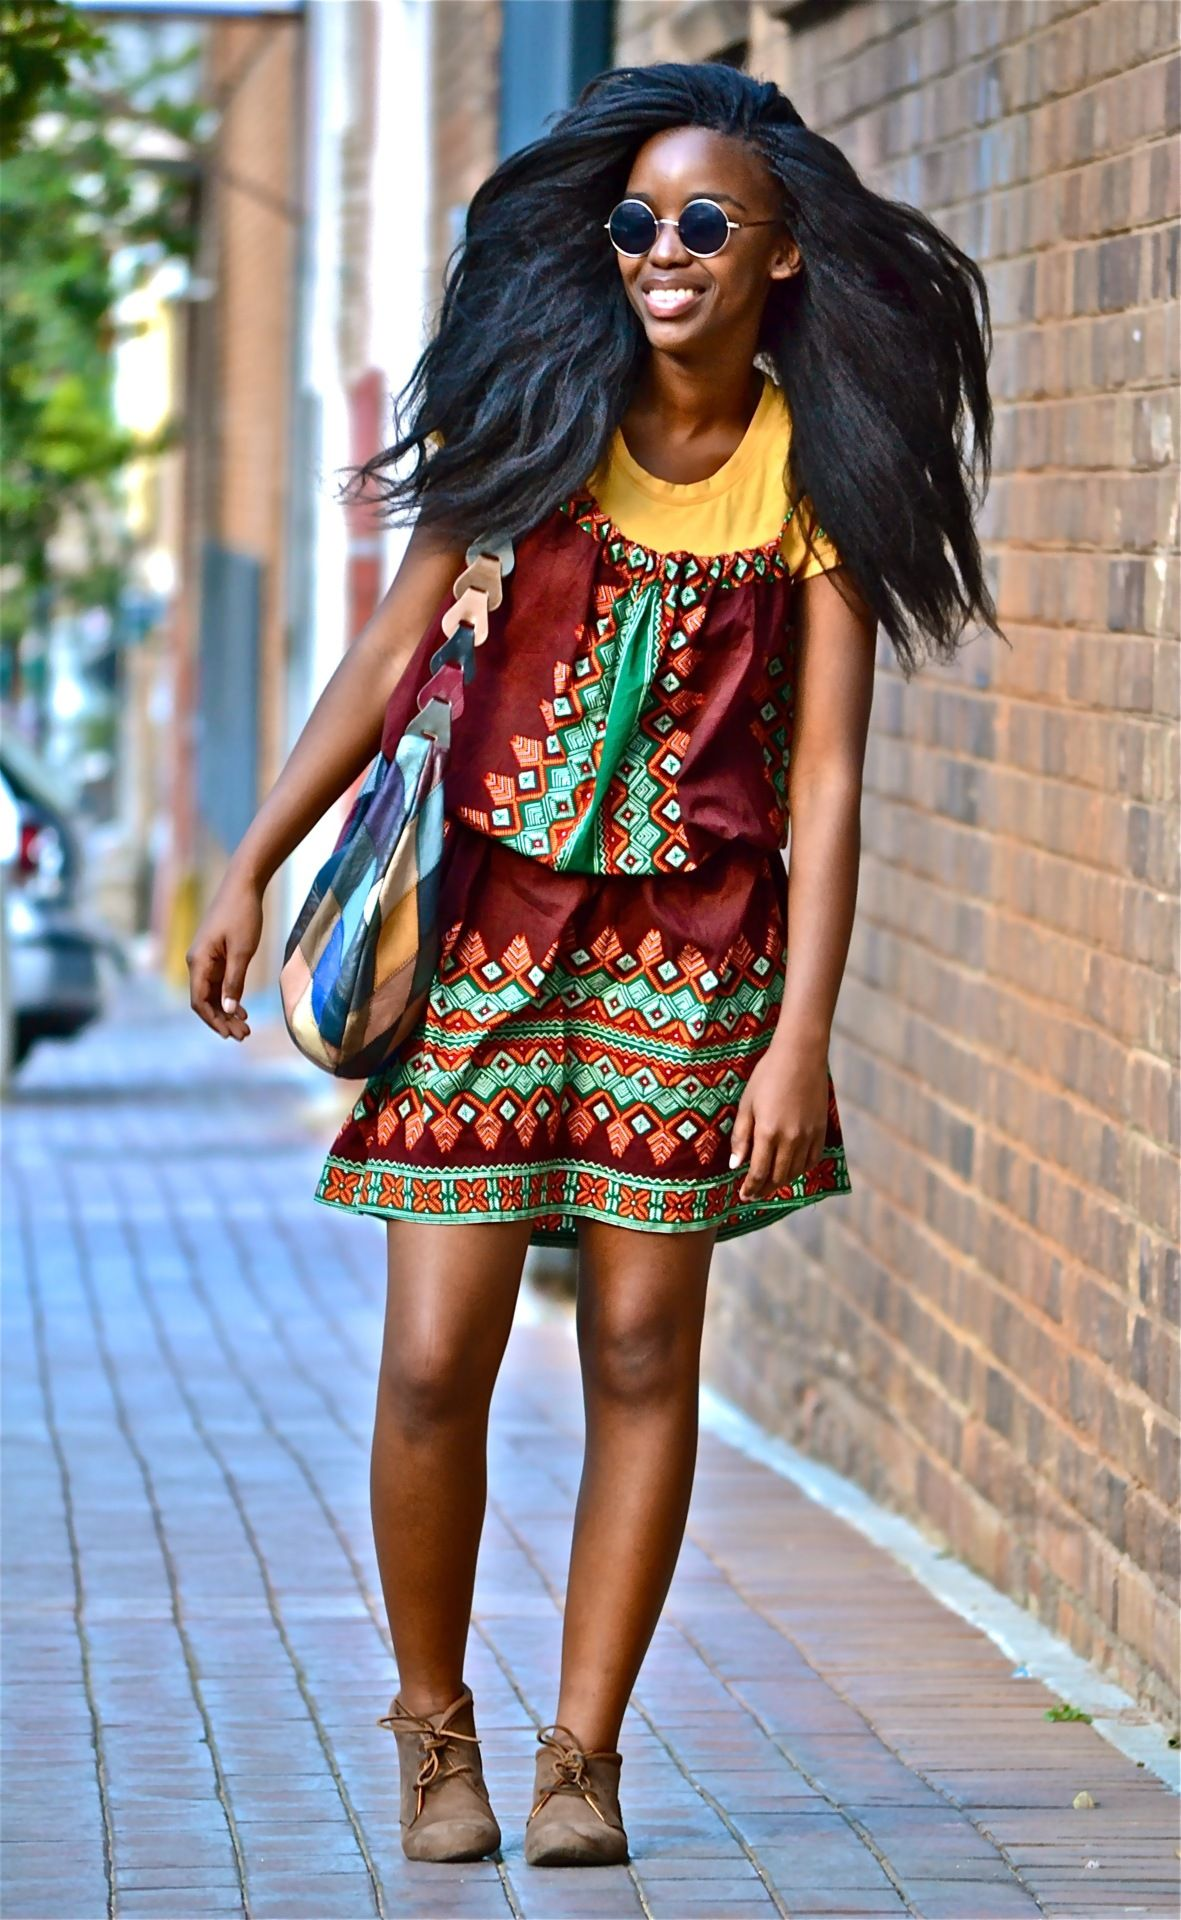 Fashionhunt Africanismo African Fashion Africans And African Street Style